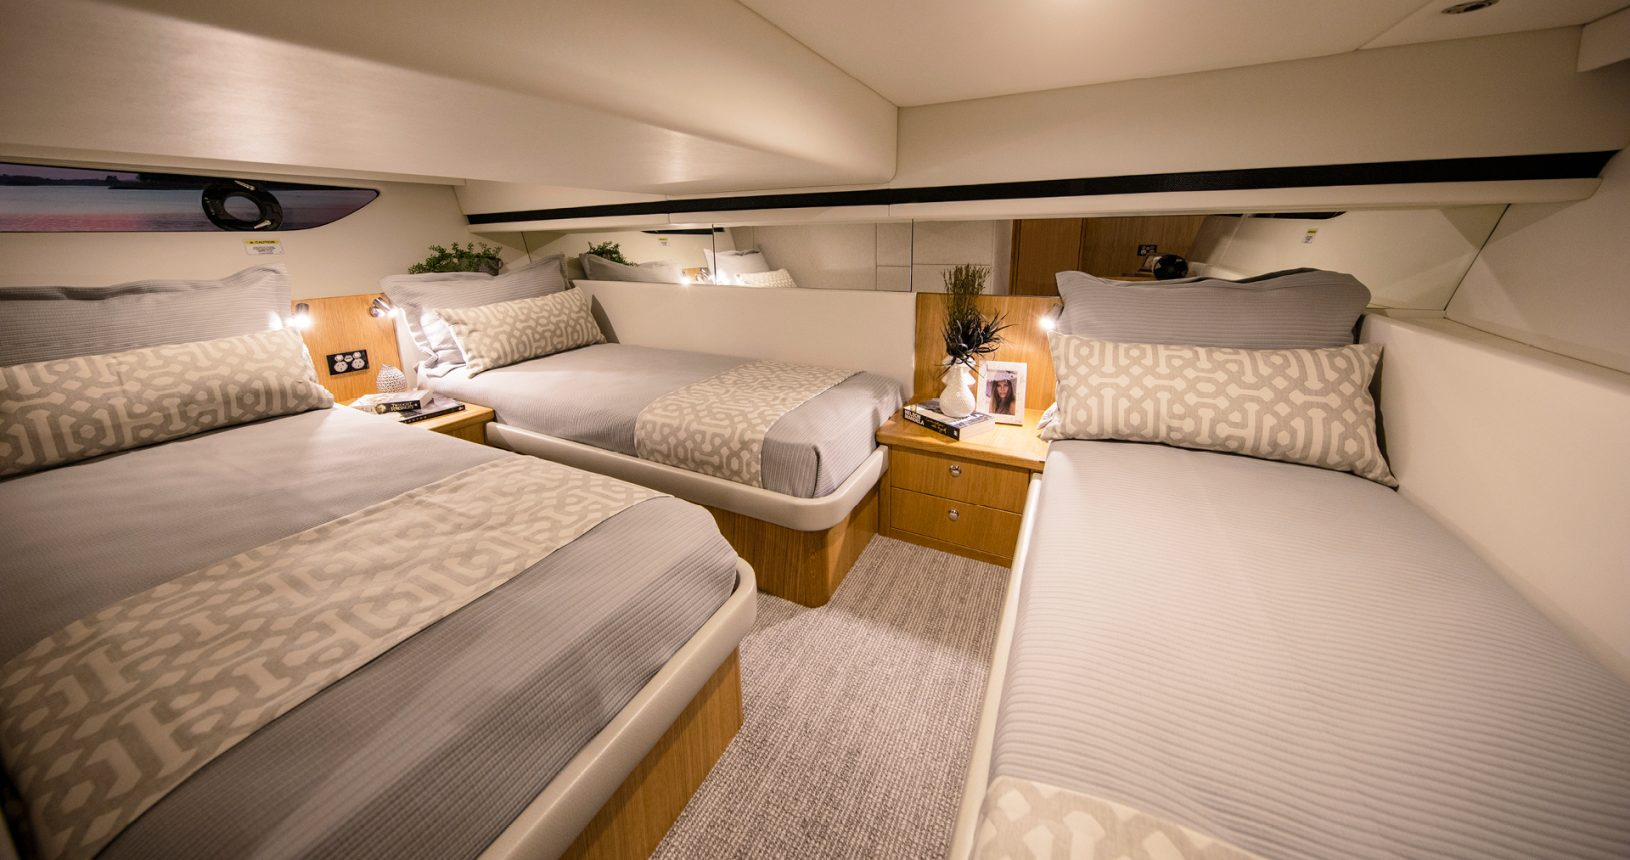 Riviera 39 Sports Motor Yacht - Guest Stateroom